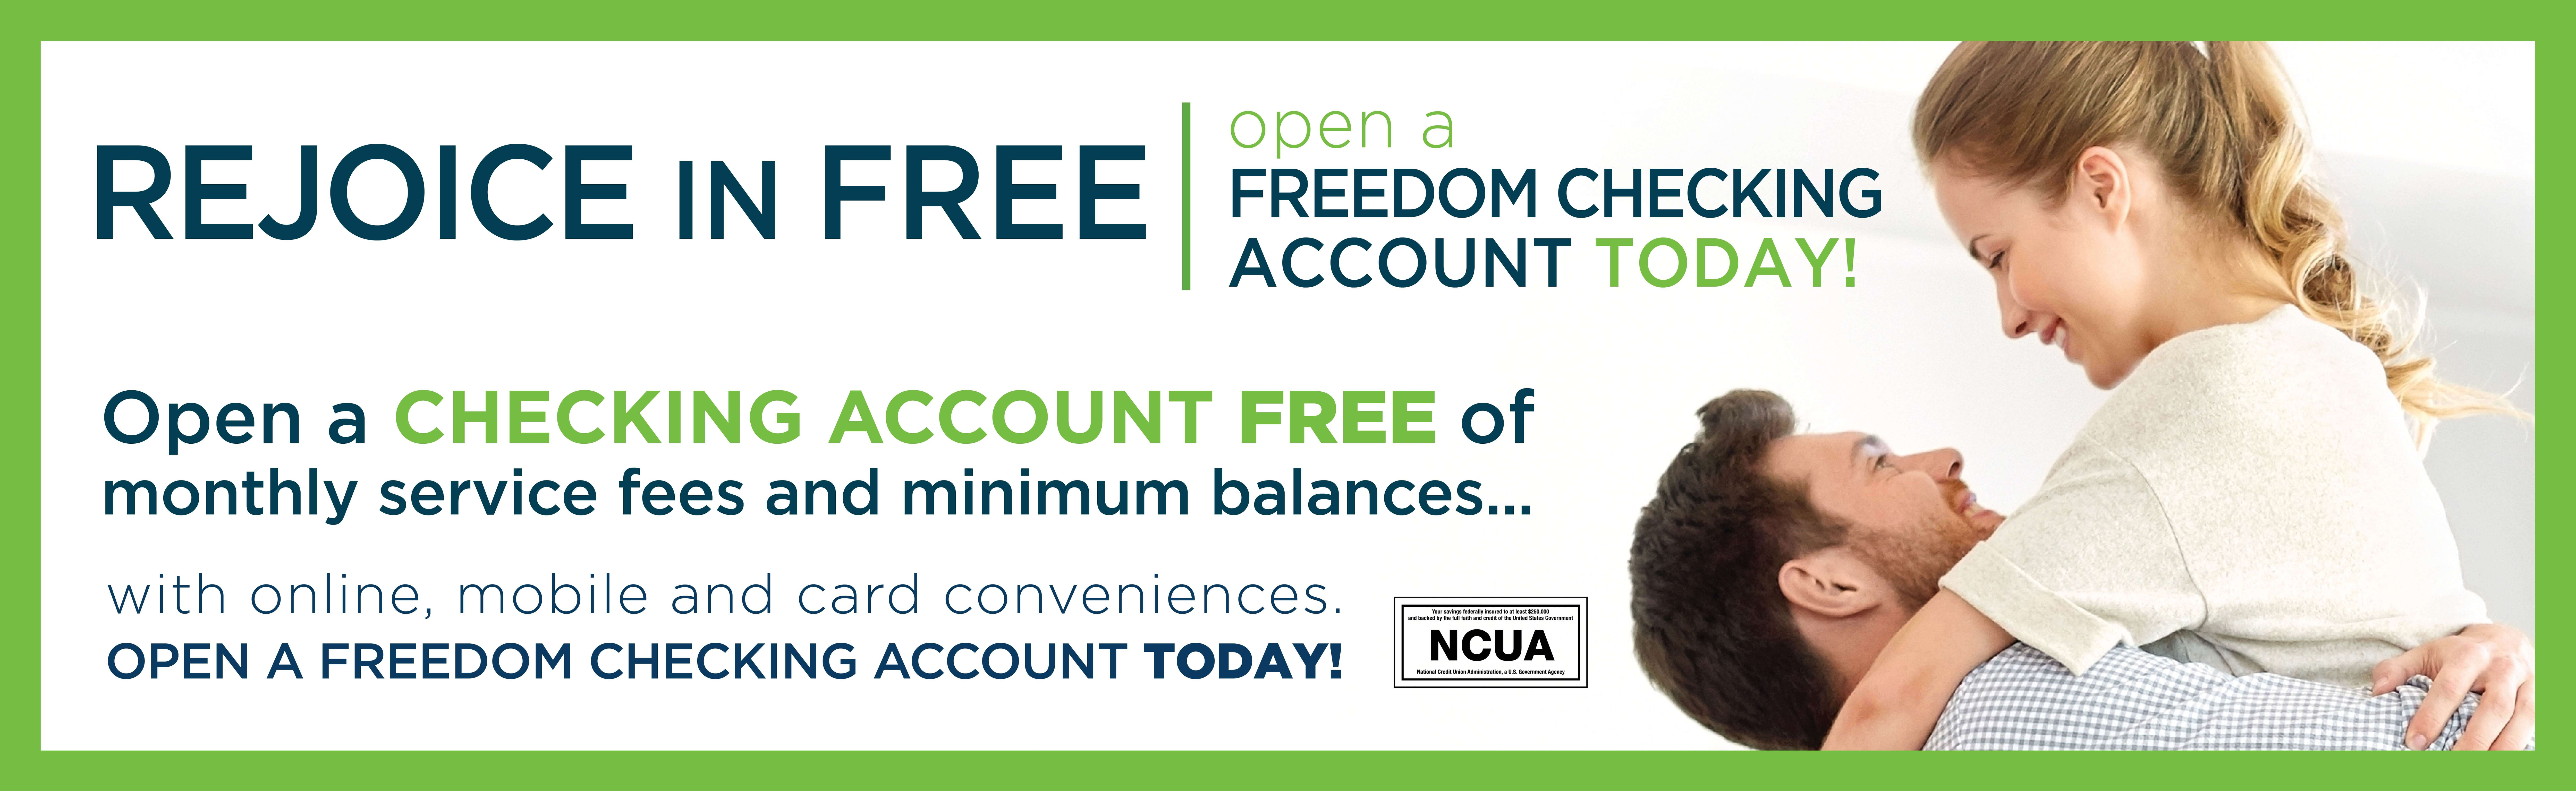 Apply for a Checking Account